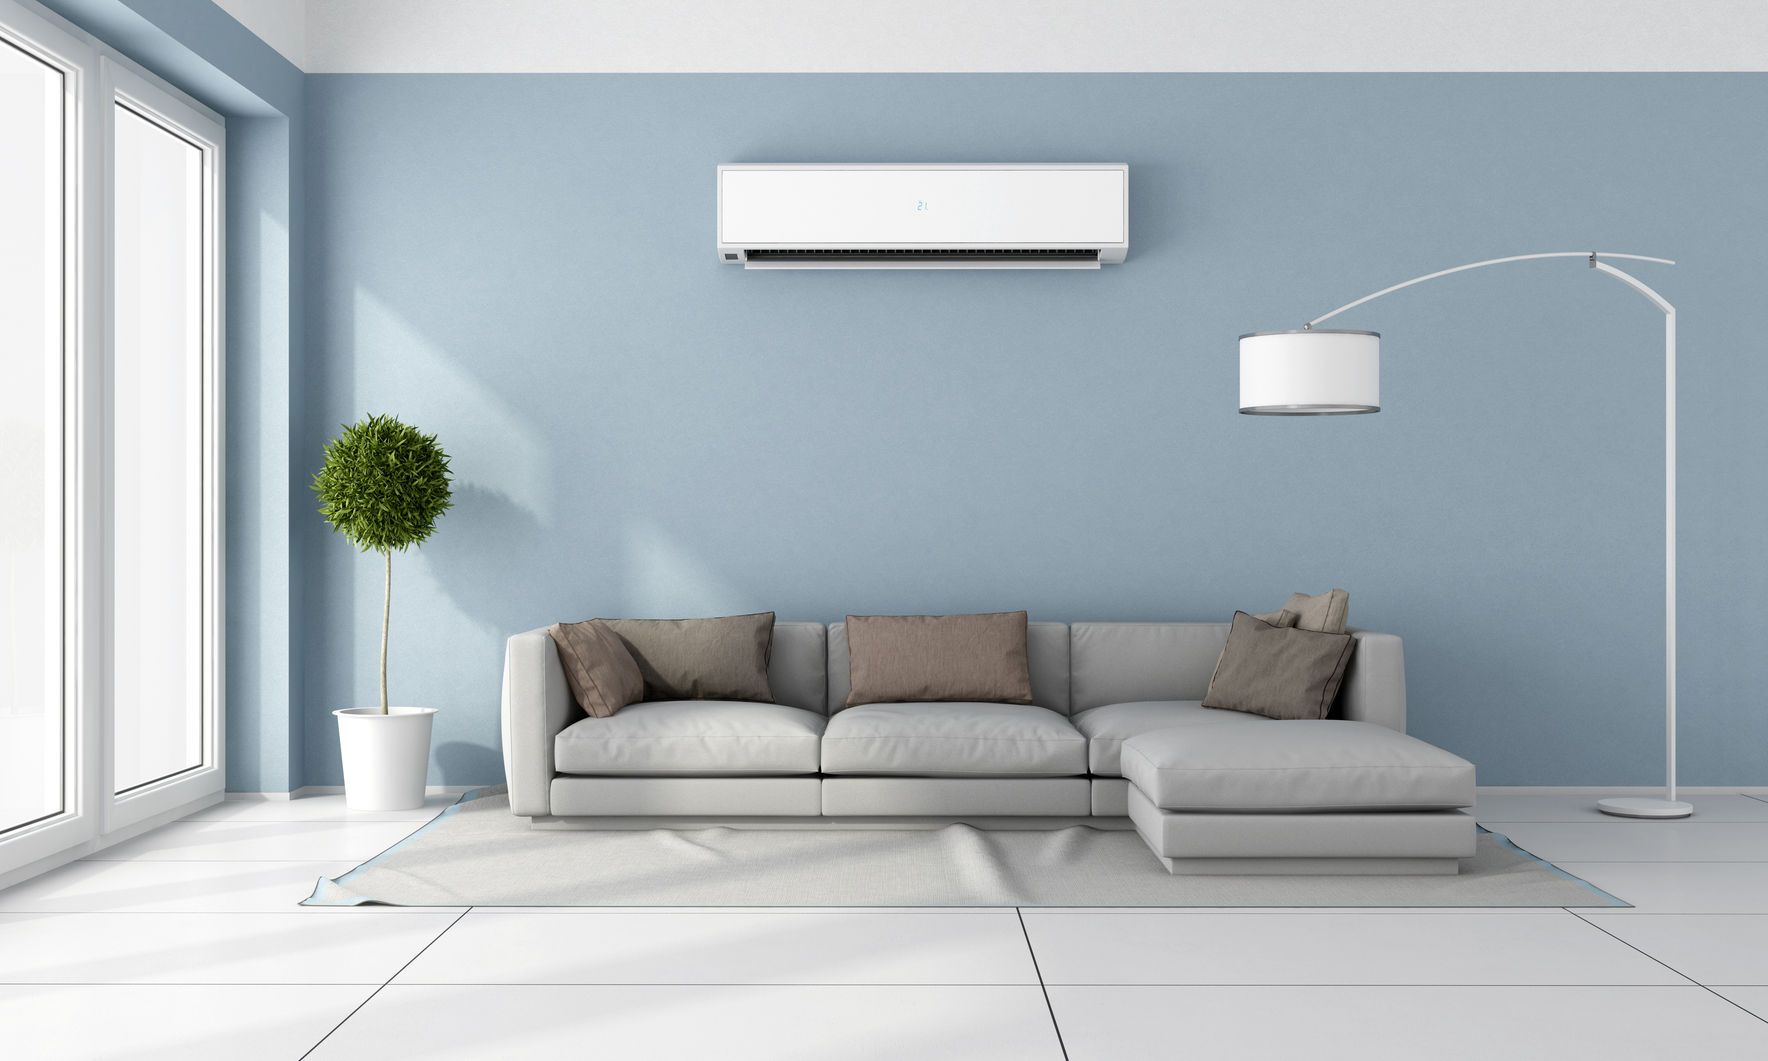 Maintenance Tips for Ductless (Mini-Split) Air Conditioners